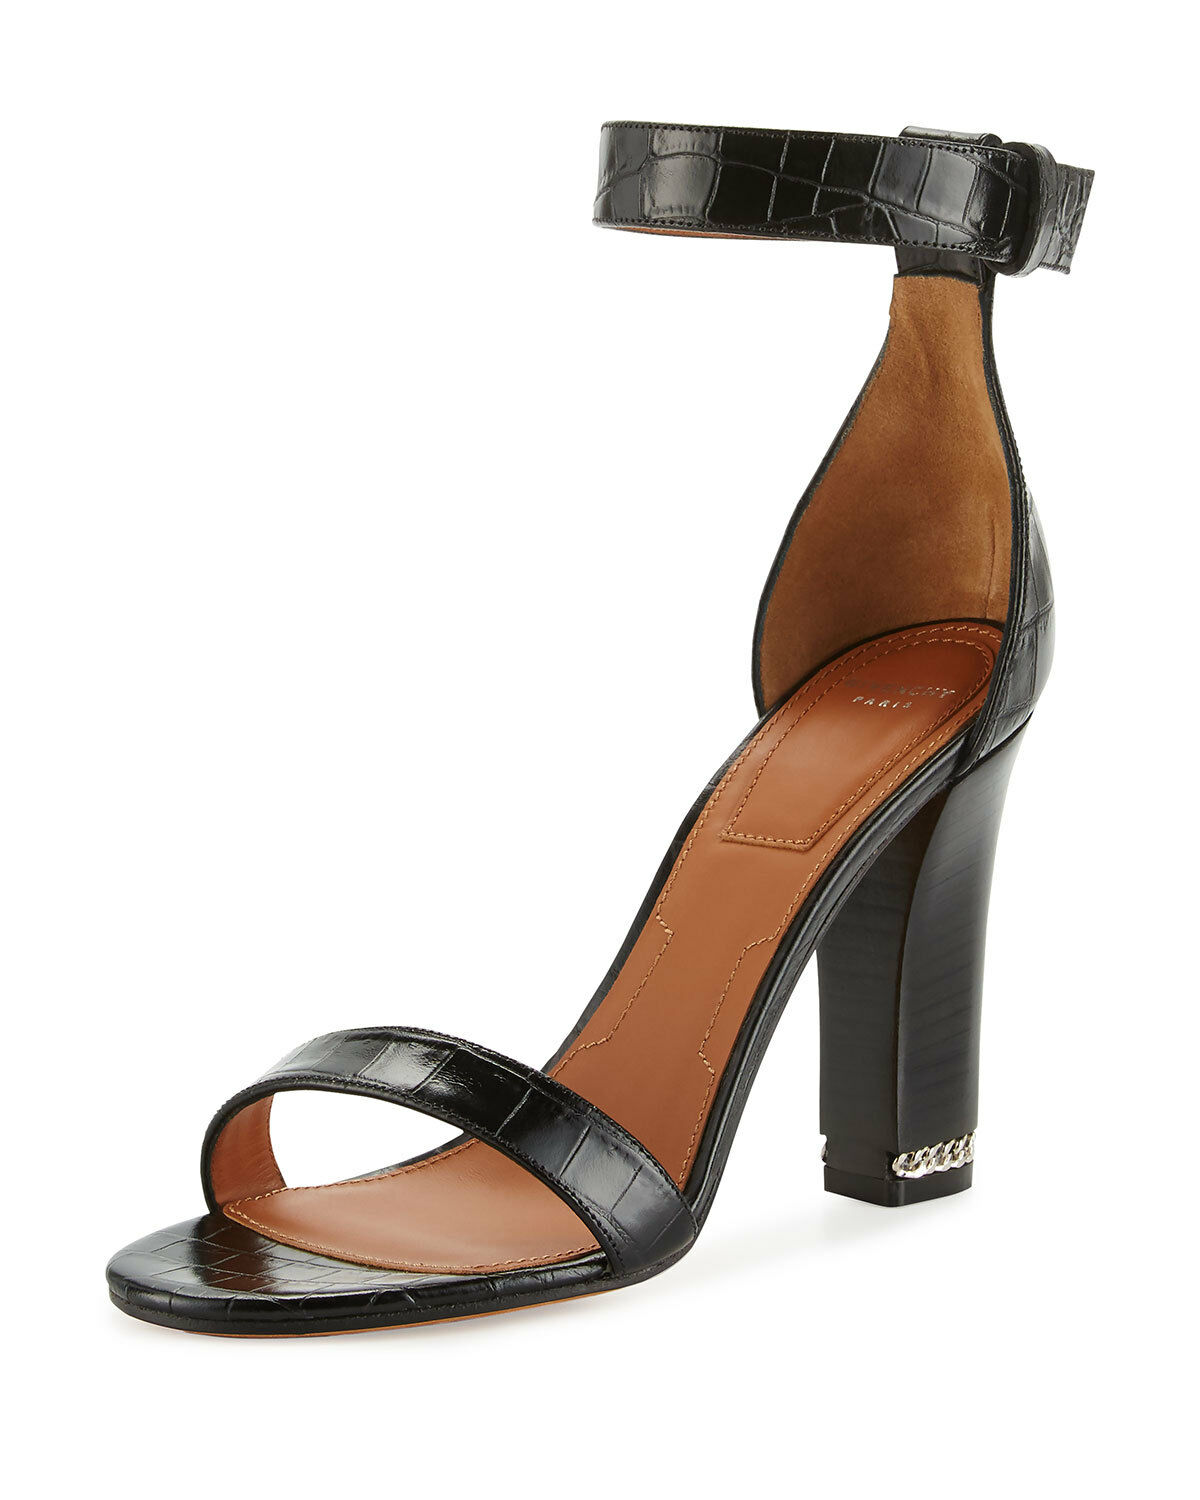 Givenchy Givenchy Givenchy Chain Crocodile-Embossed 105mm Sandal, Black 39.5 MSRP   795.00 ba8b1d